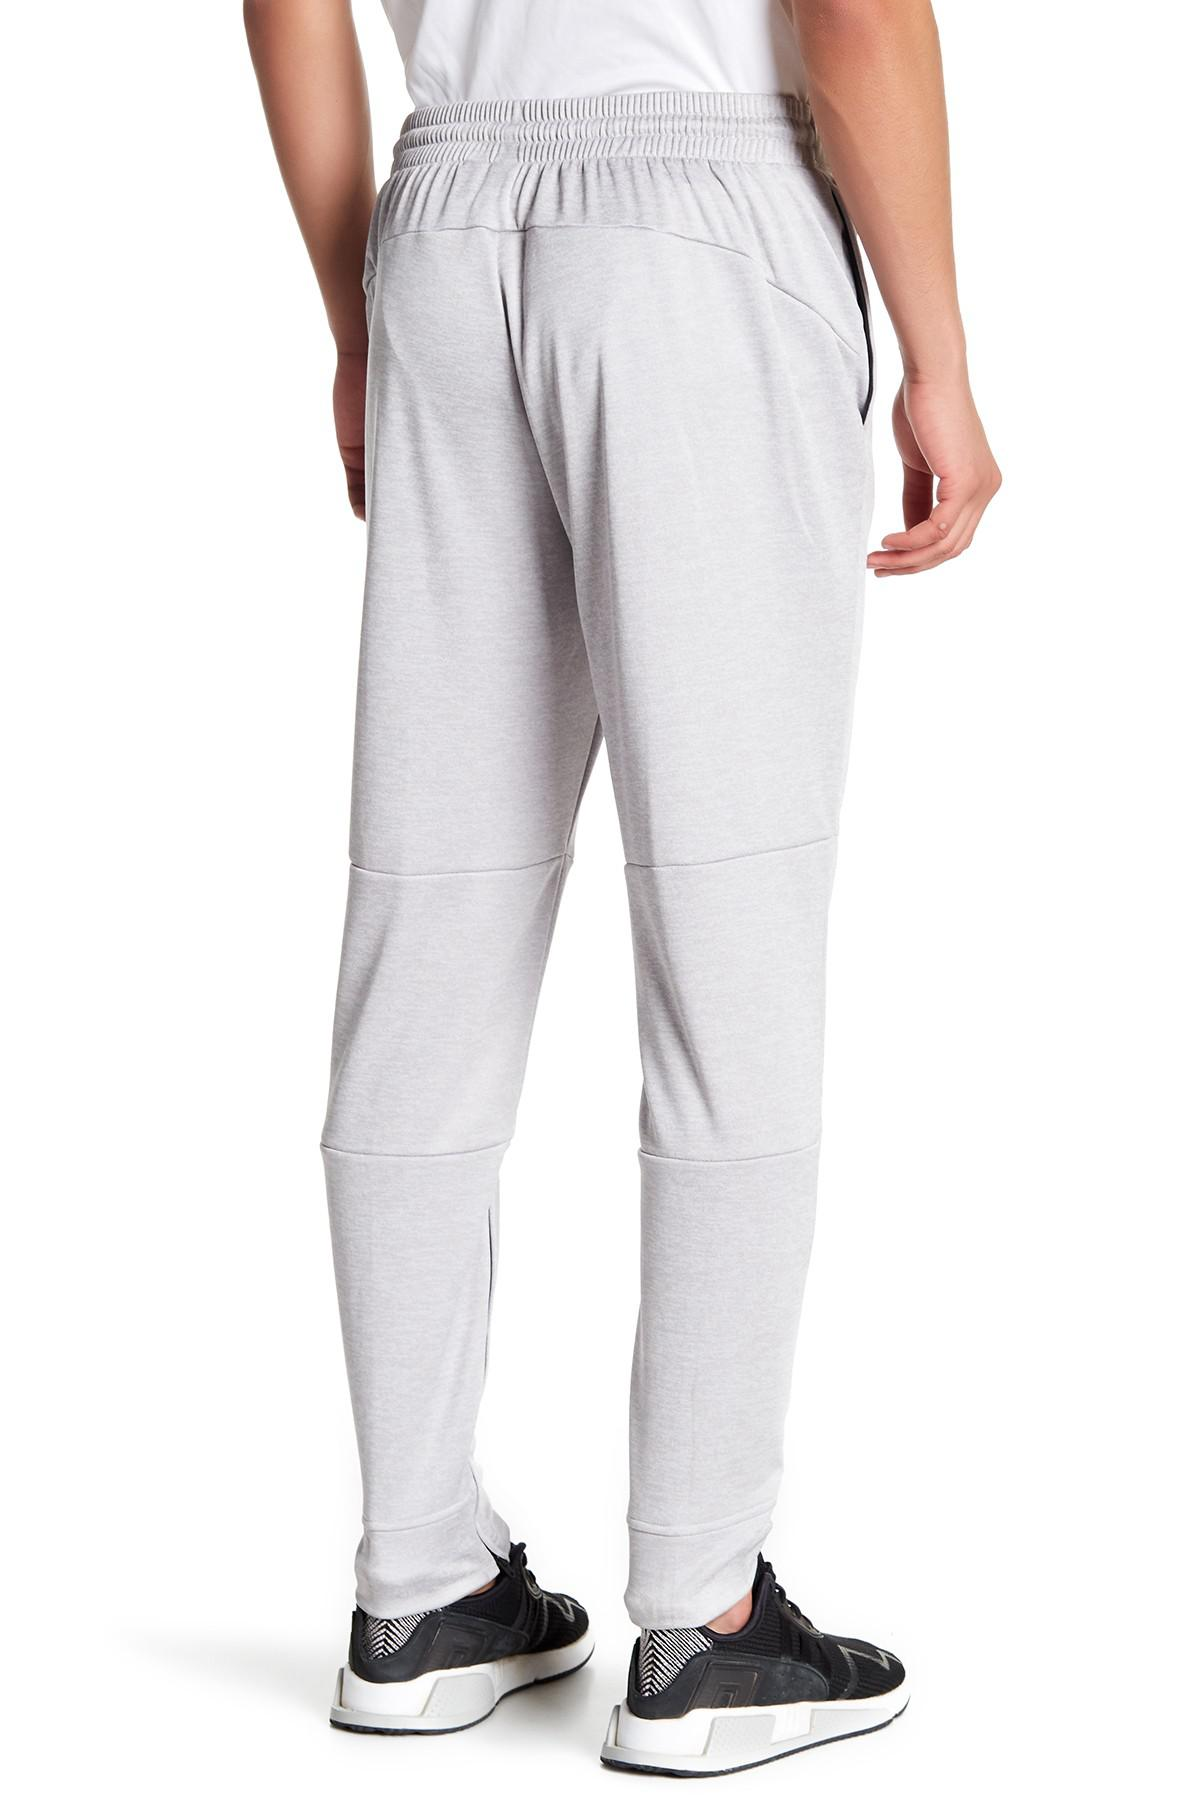 c69350befd1 adidas Ti Lite Pants in Gray for Men - Lyst